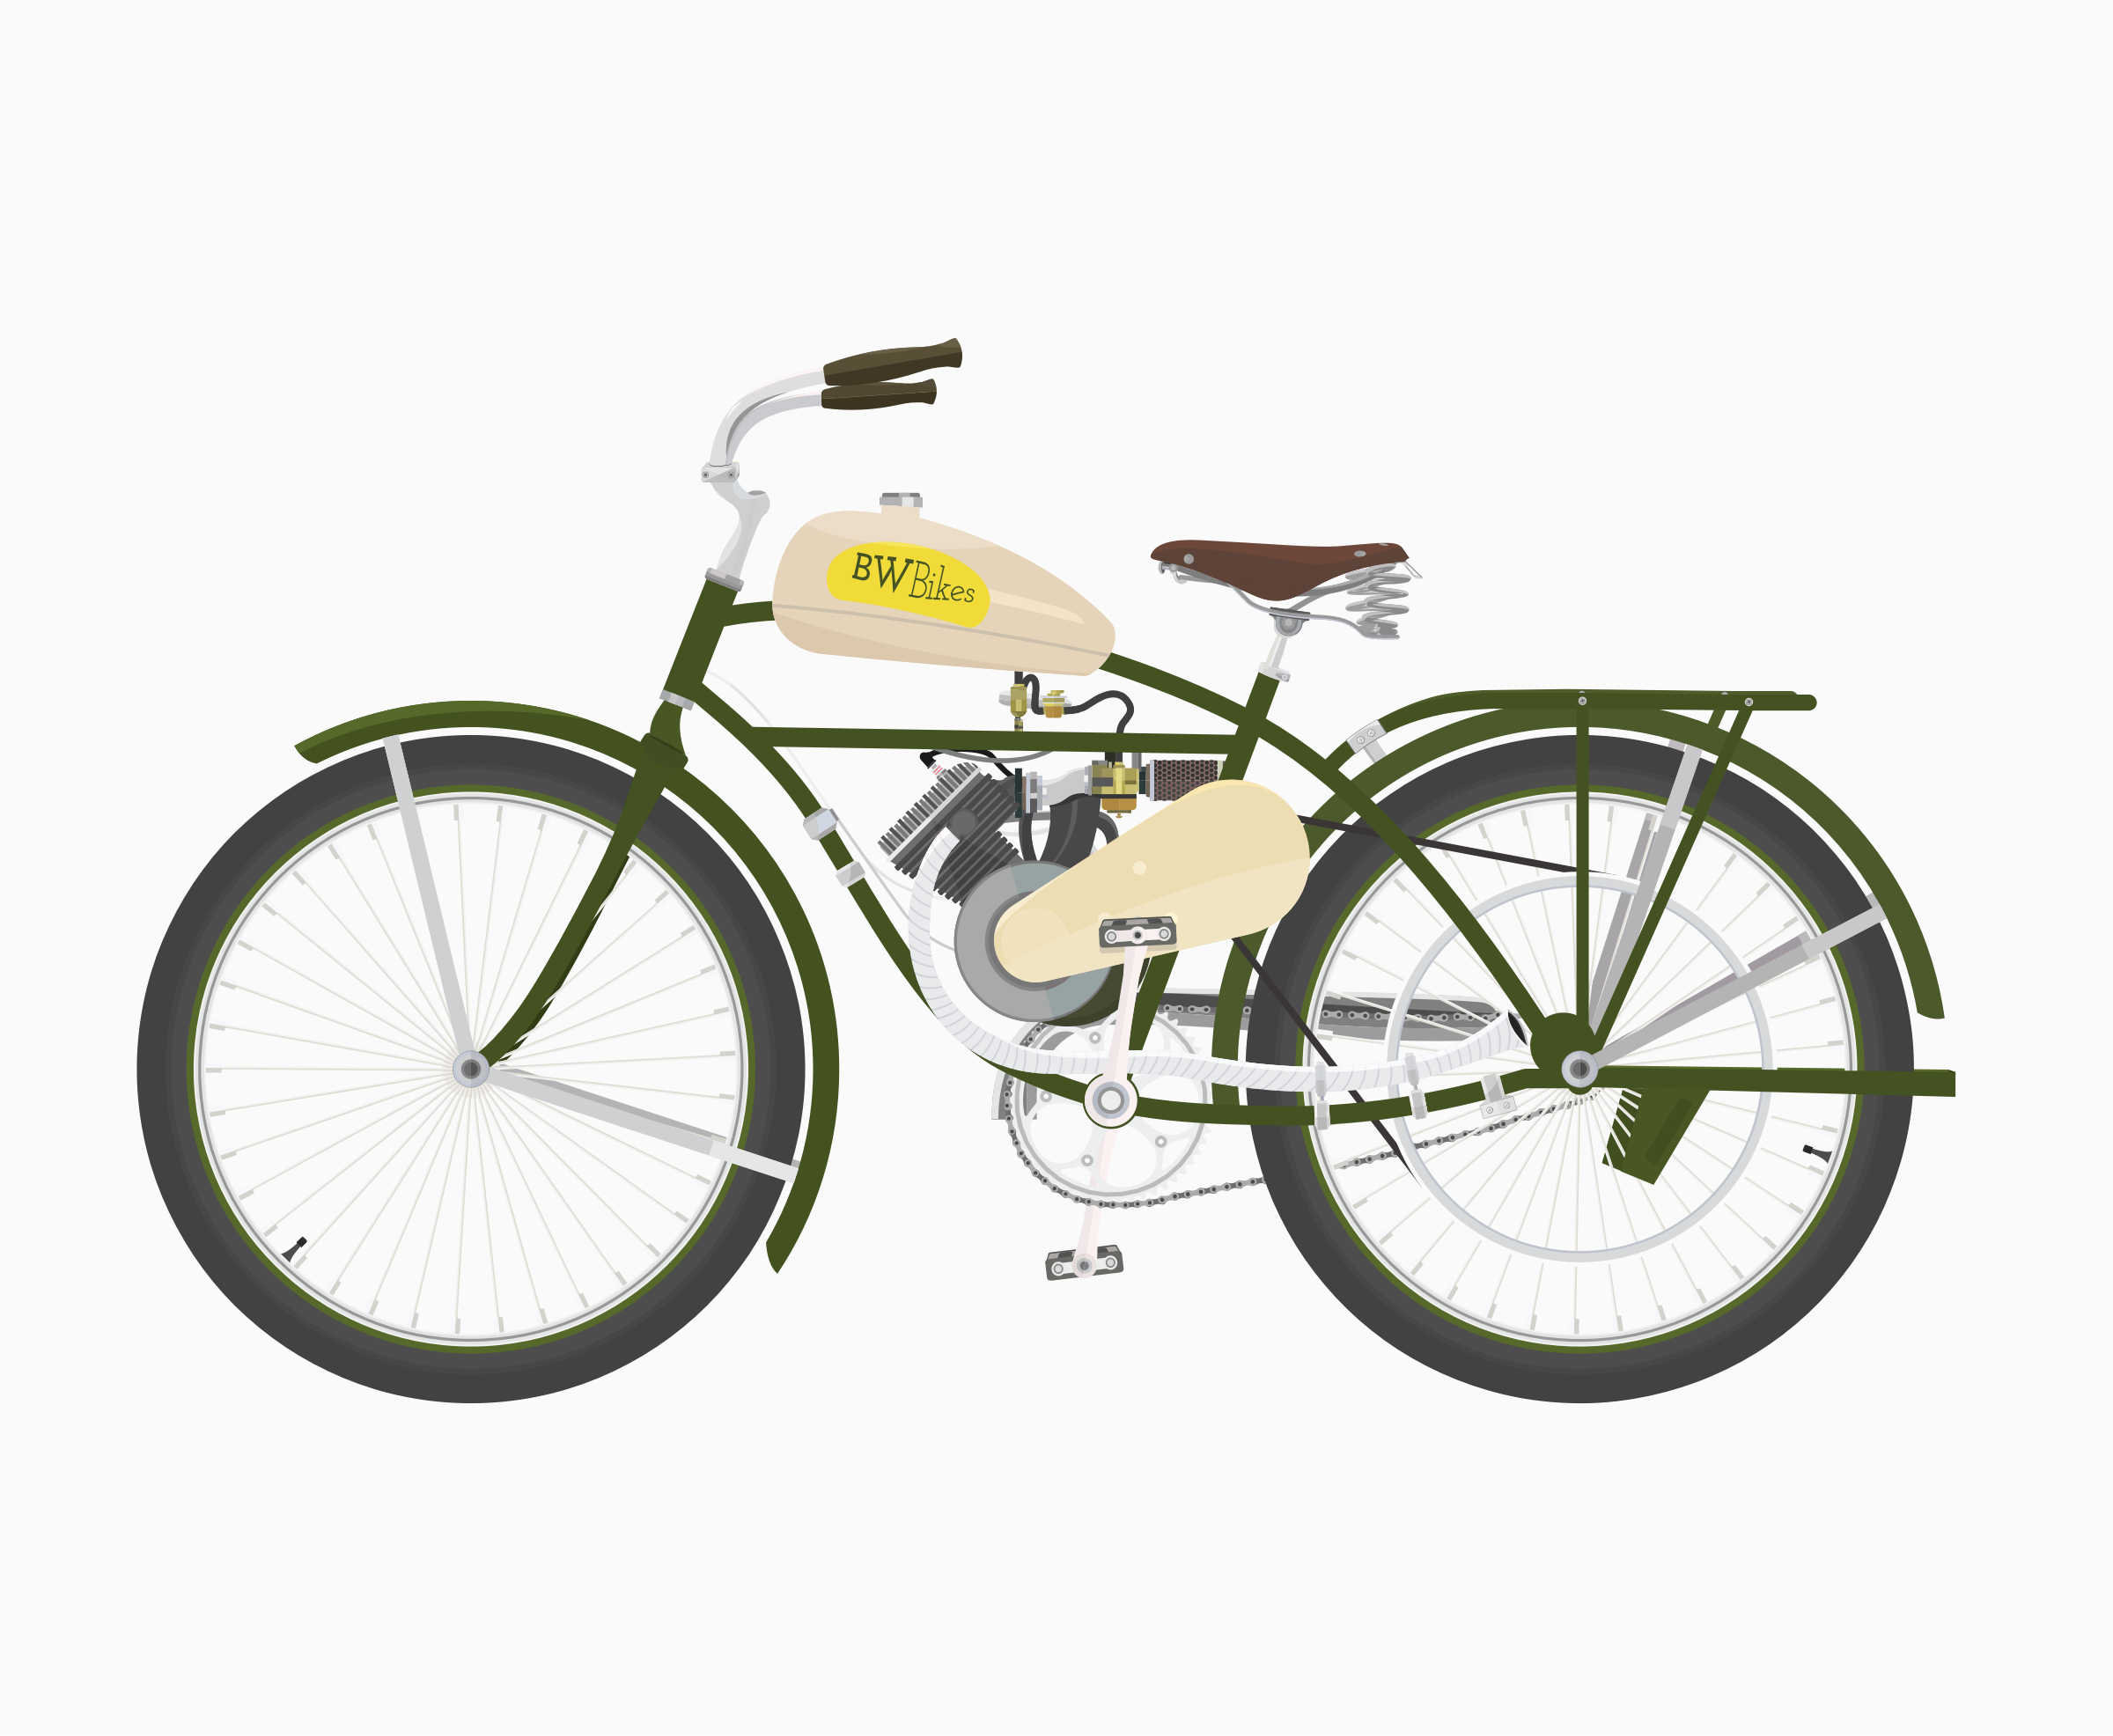 Vintage Bicycle With Motor by barrettward